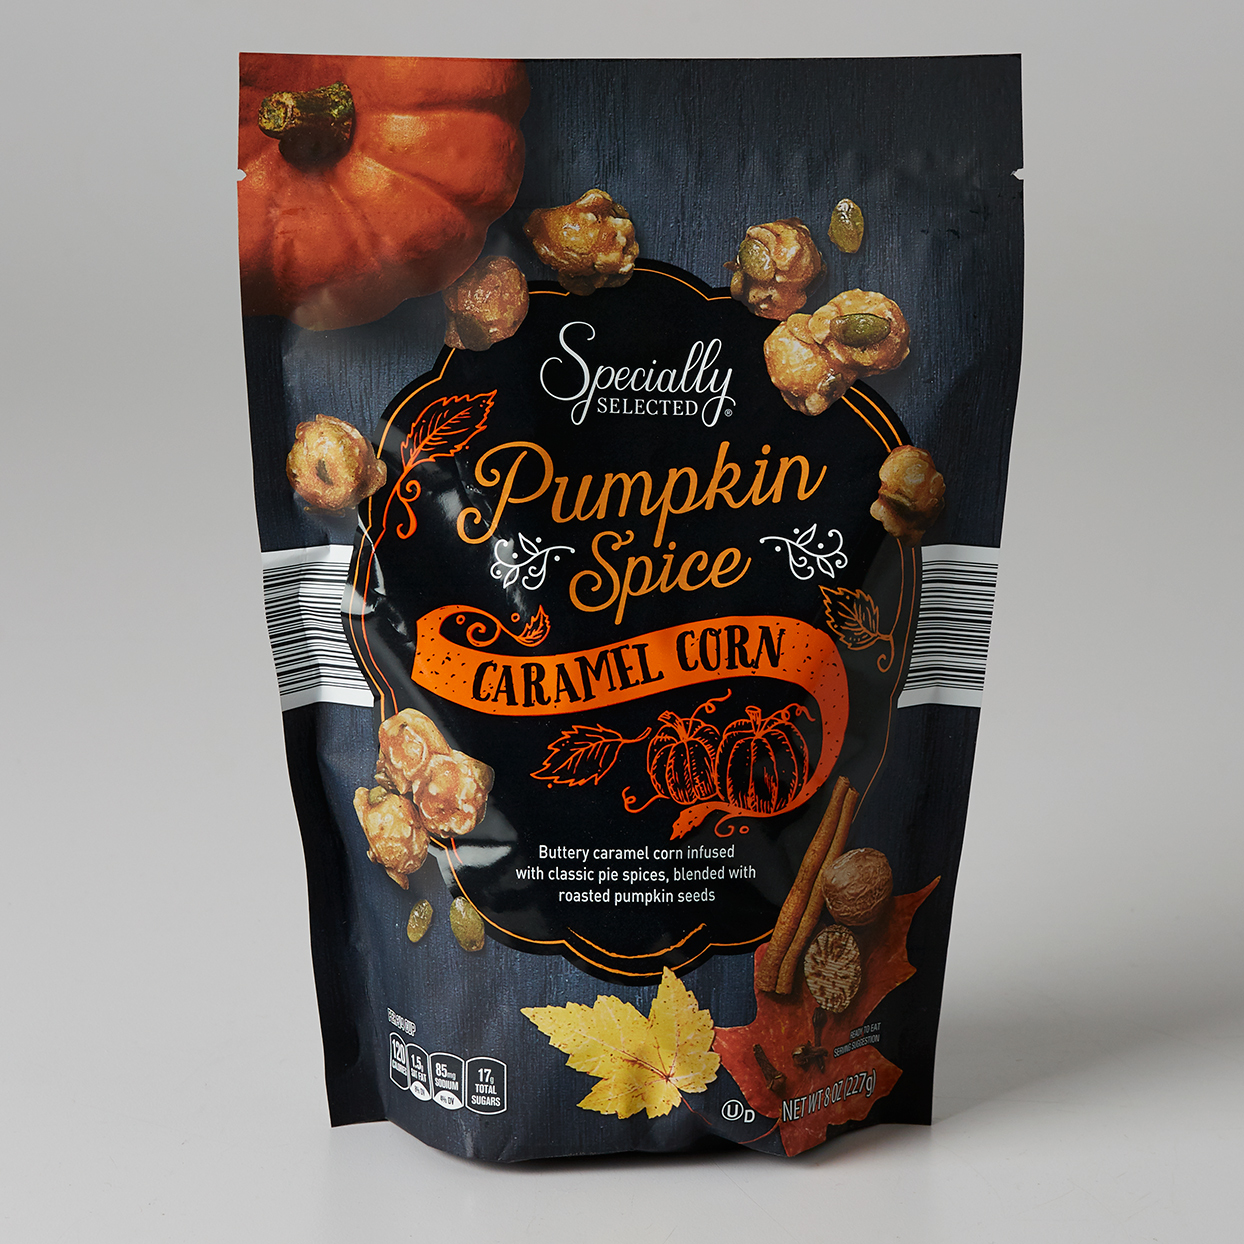 Aldi pumpkin spice caramel corn on plain background